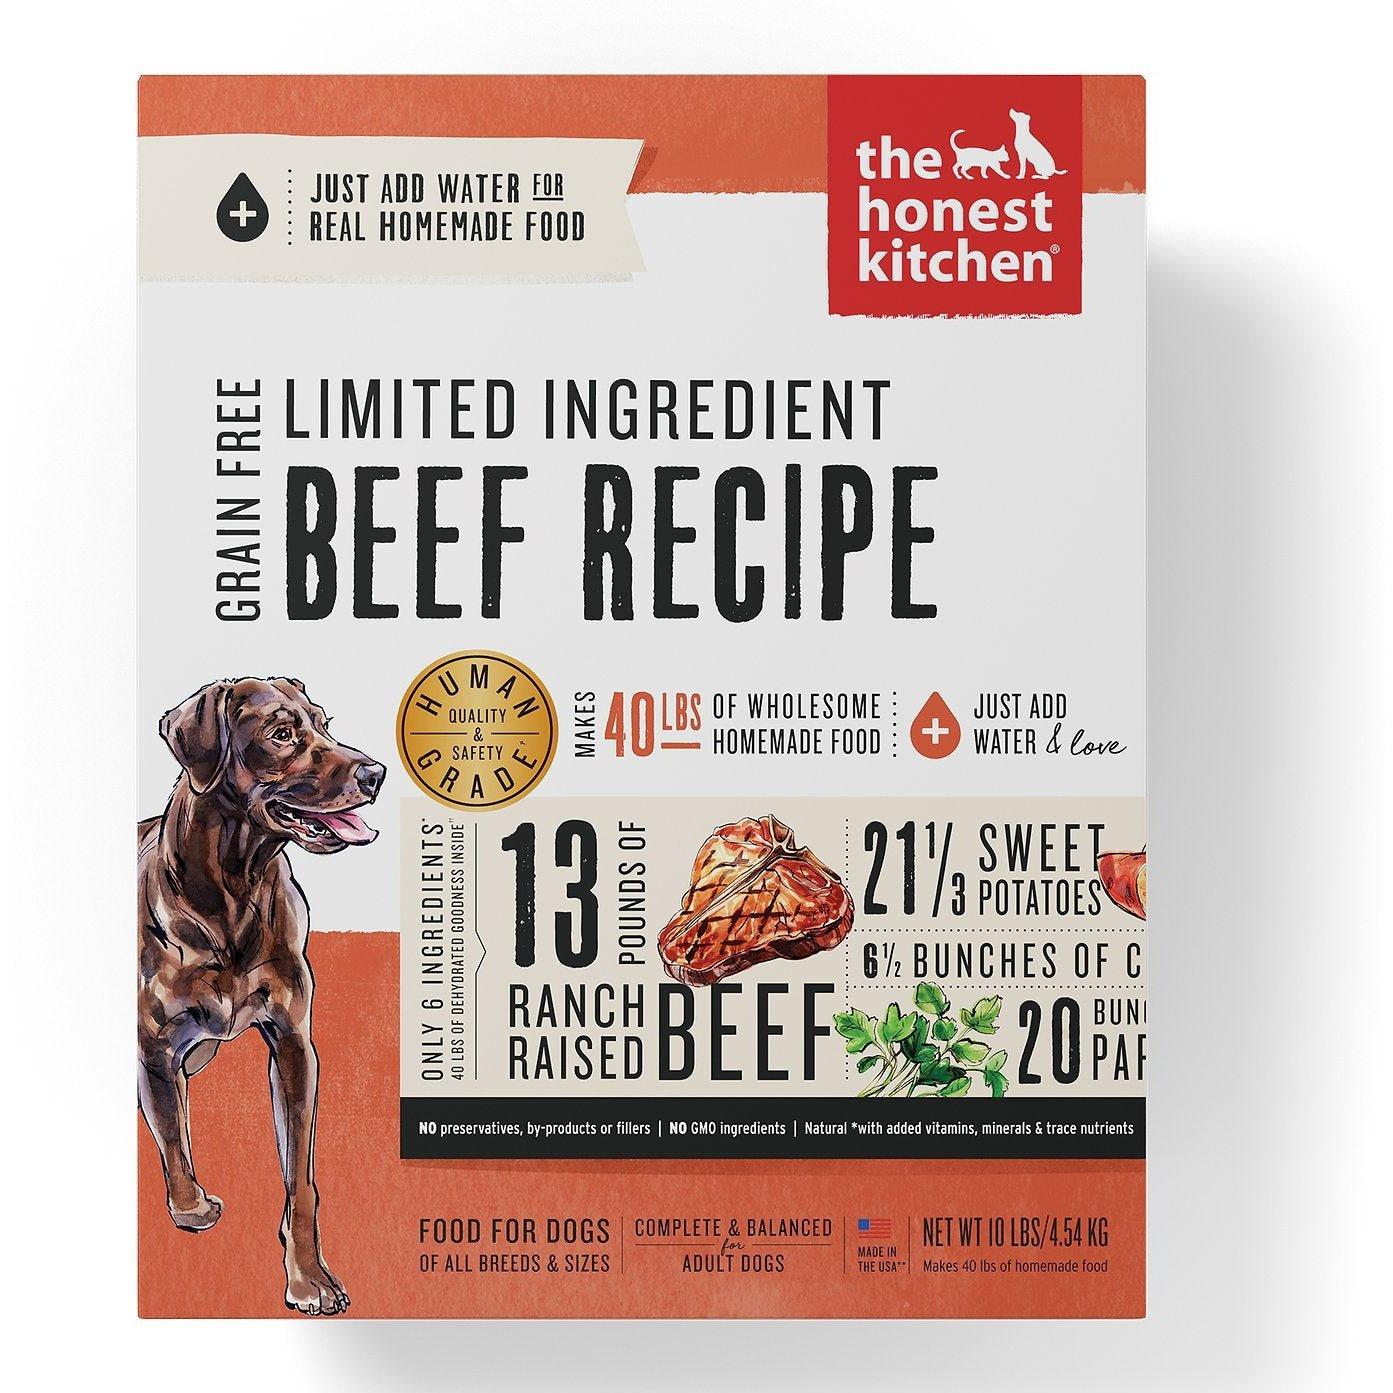 The Honest Kitchen Limited Ingredient Diet Beef Recipe Grain-Free Dehydrated Dog Food